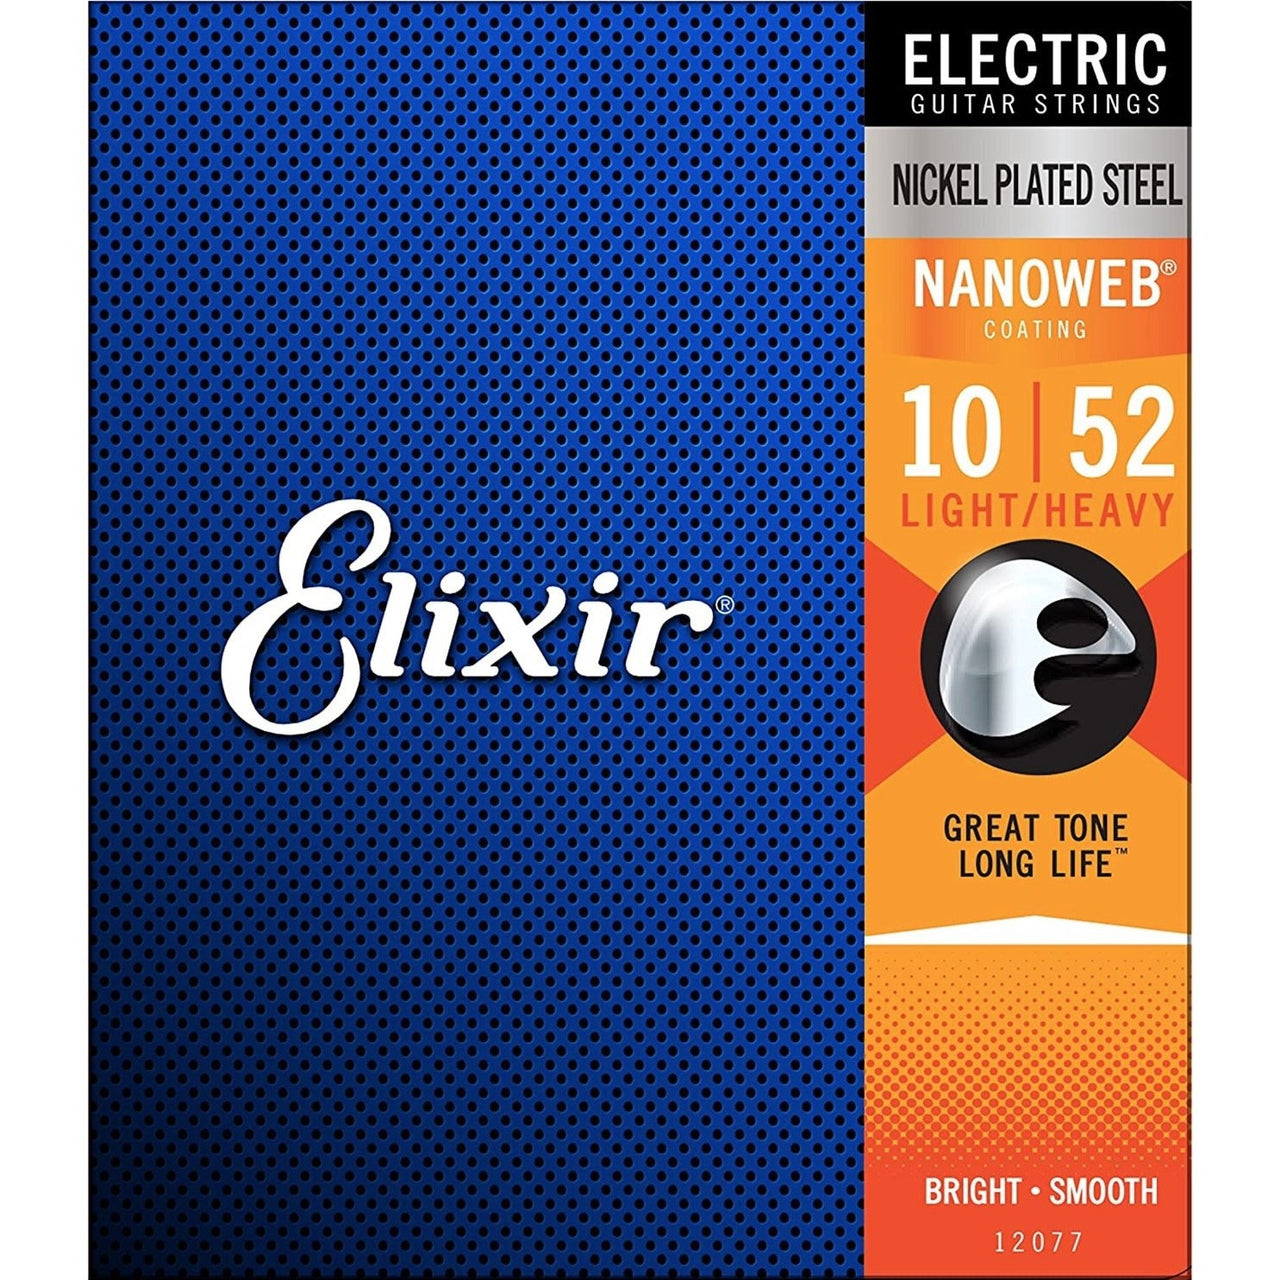 Elixir 12077 Nanoweb Coated Electric Guitar Strings - Light / Heavy - 10-52